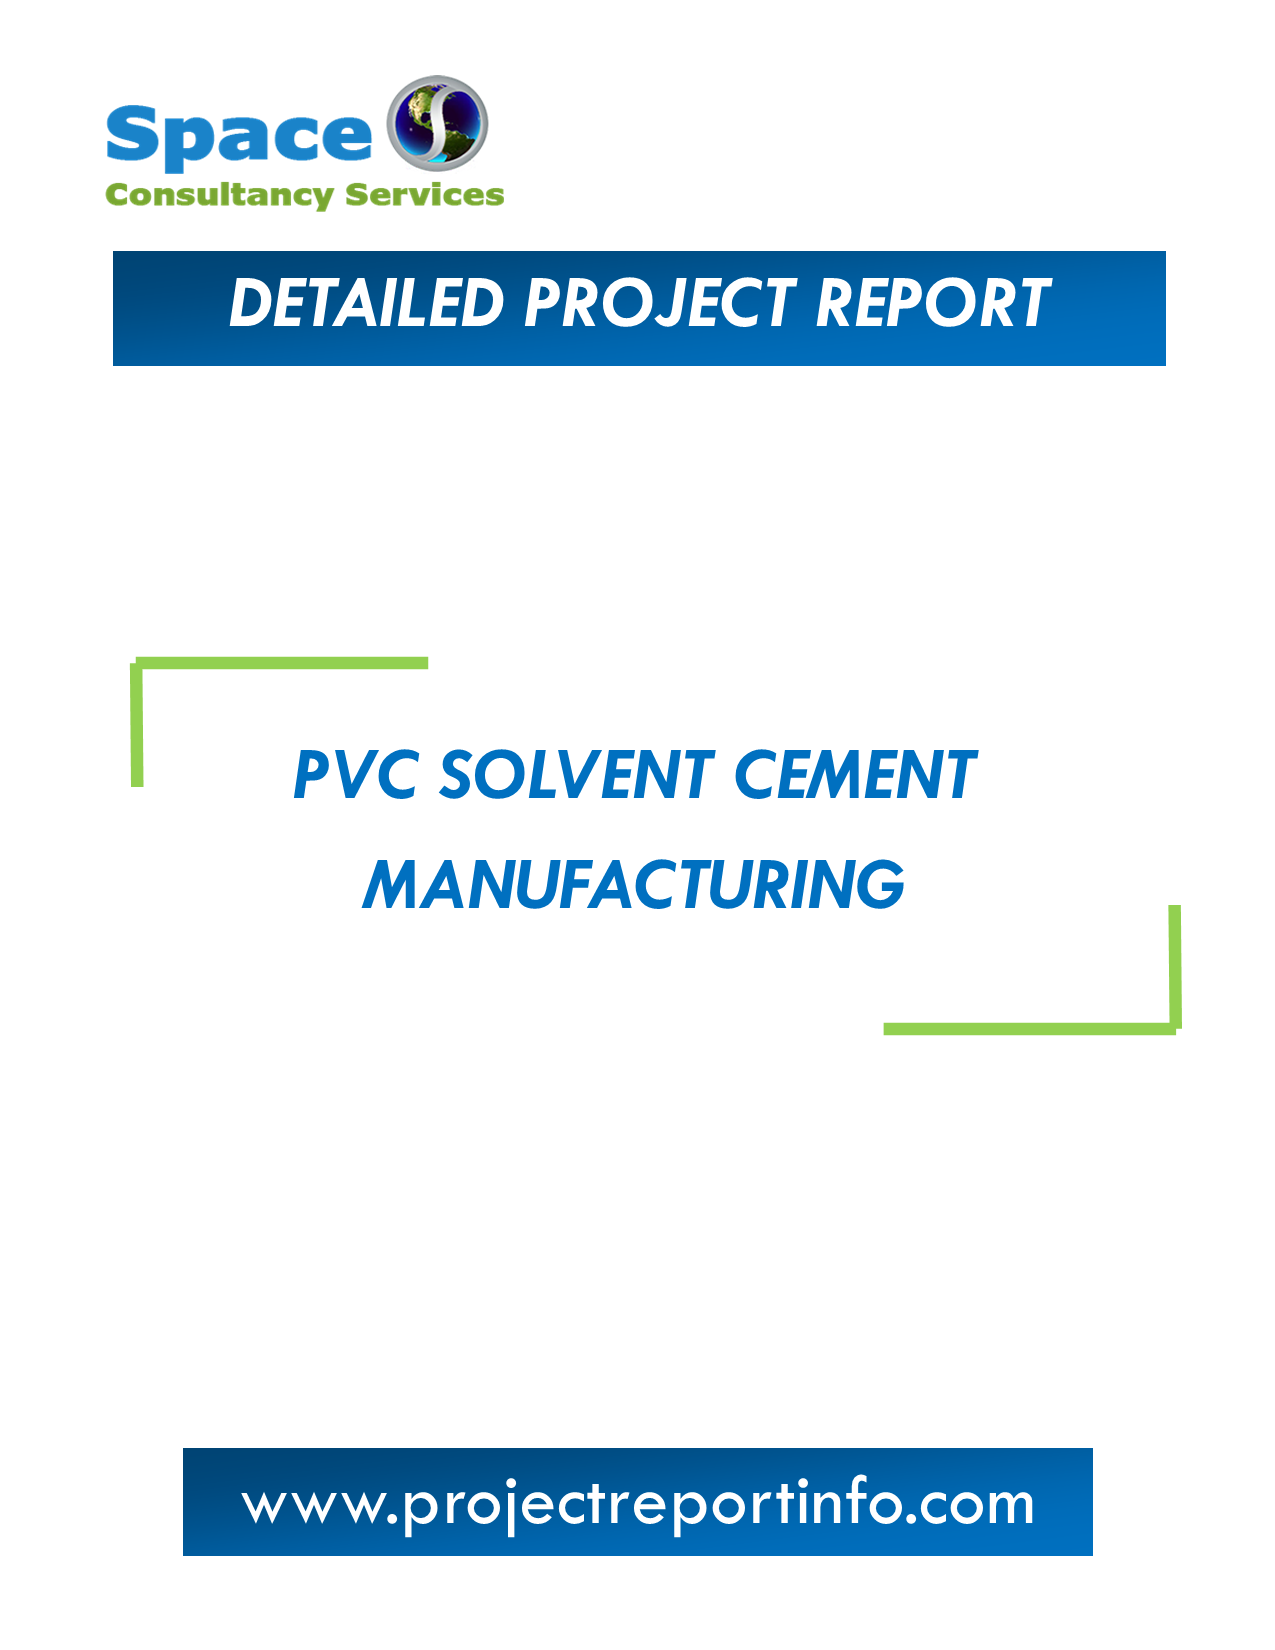 Project Report on PVC Solvent Cement Manufacturing